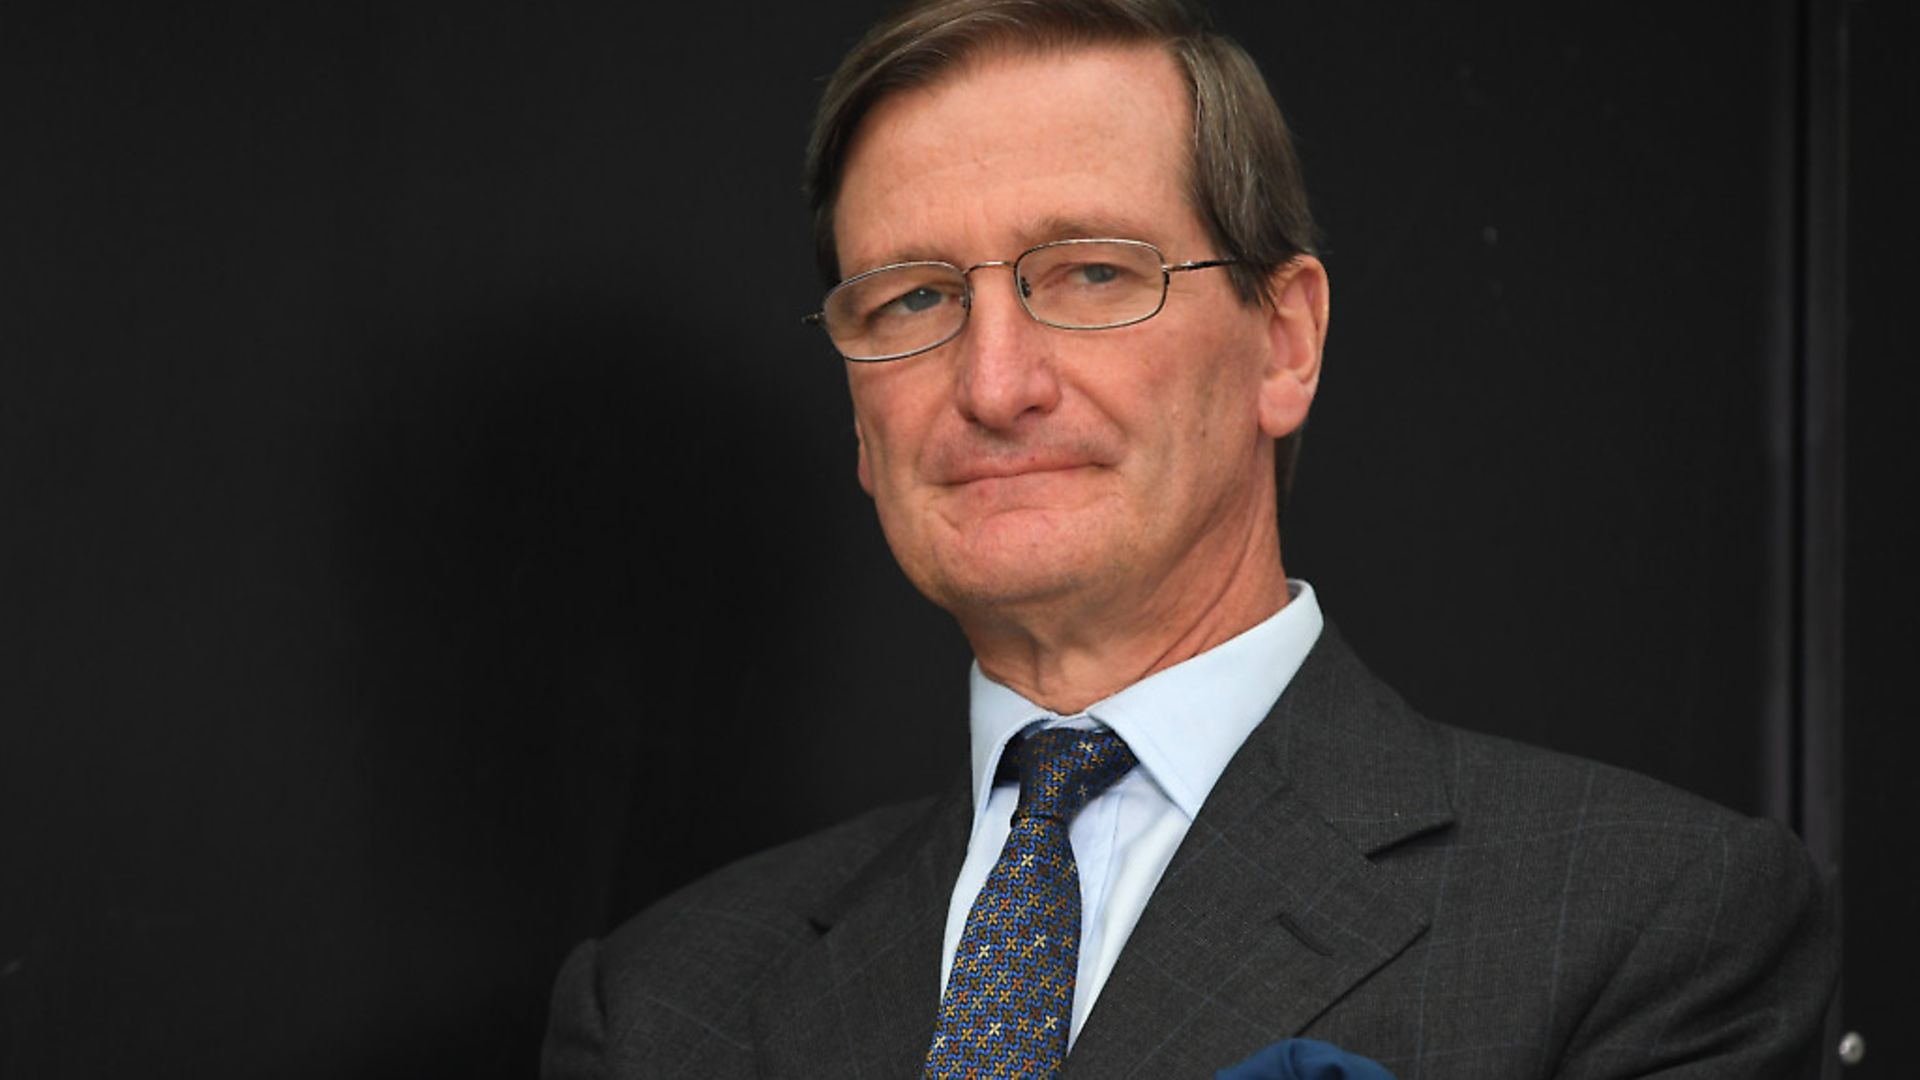 Dominic Grieve talks onstage at a 'Let Us Be Heard' rally as Pro-remain supporters gather in Westminster (Photo by Chris J Ratcliffe/Getty Images) - Credit: Getty Images